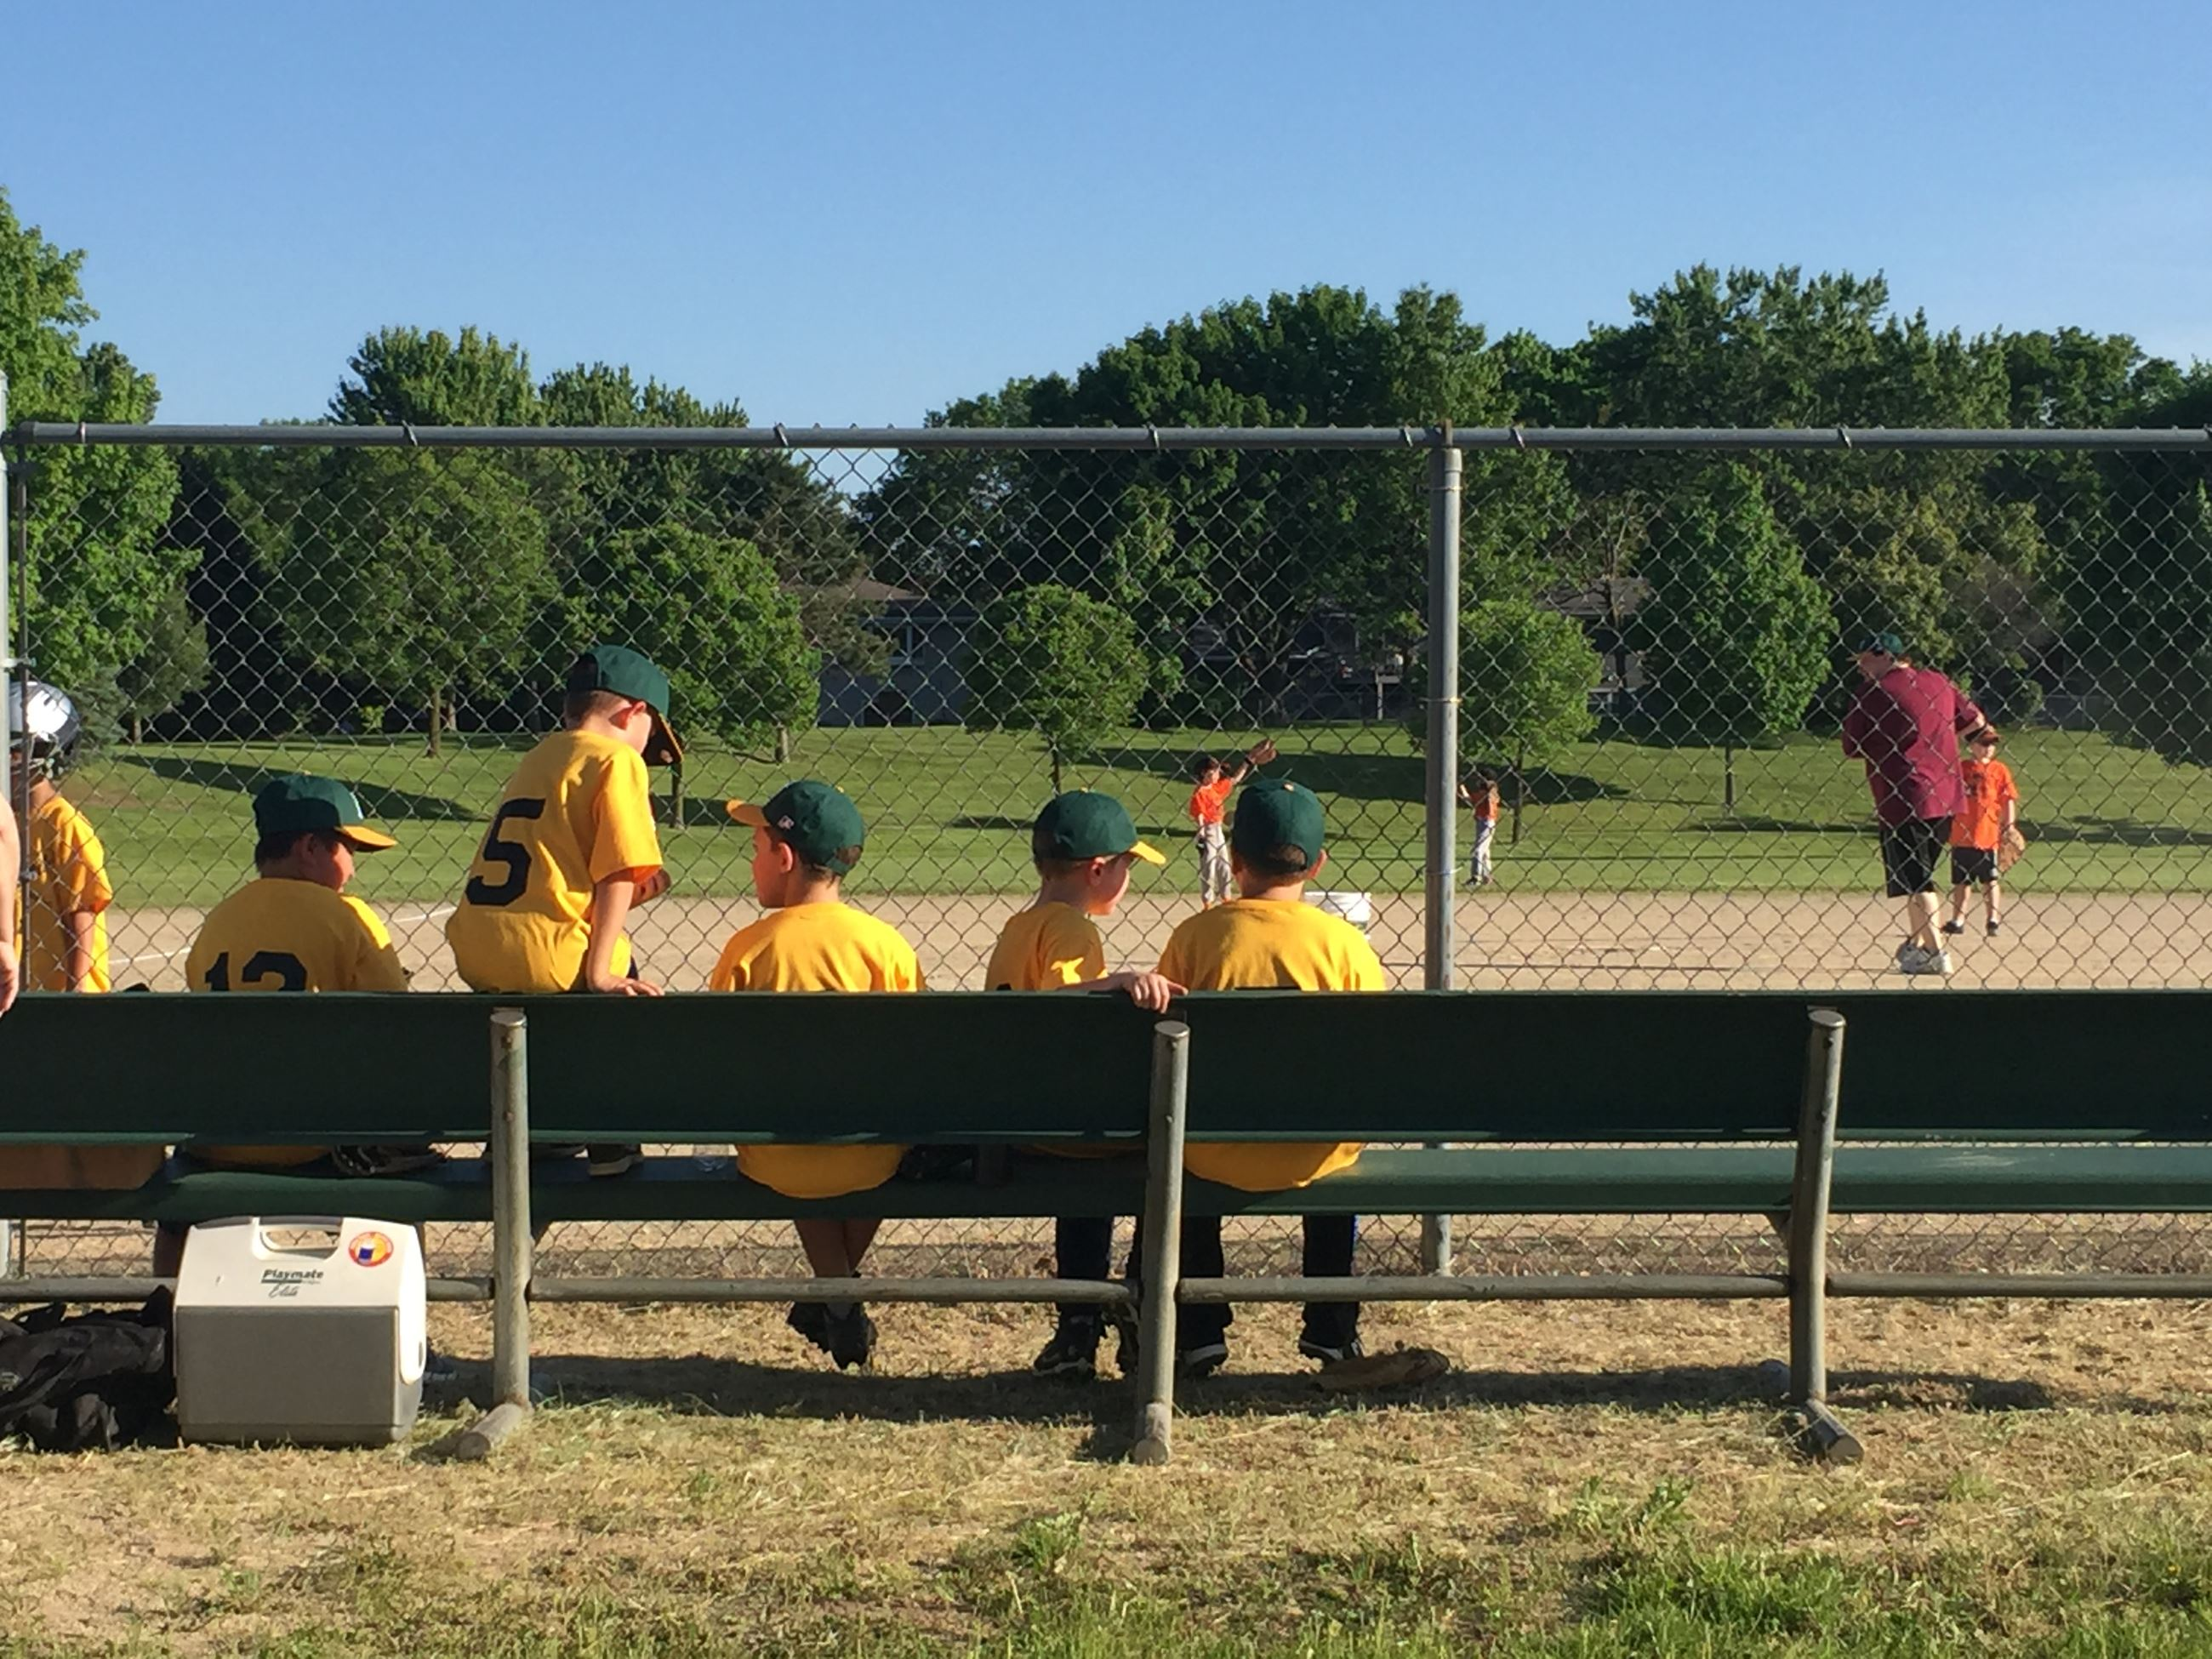 Kids Sitting on a Bench at a Baseball Game